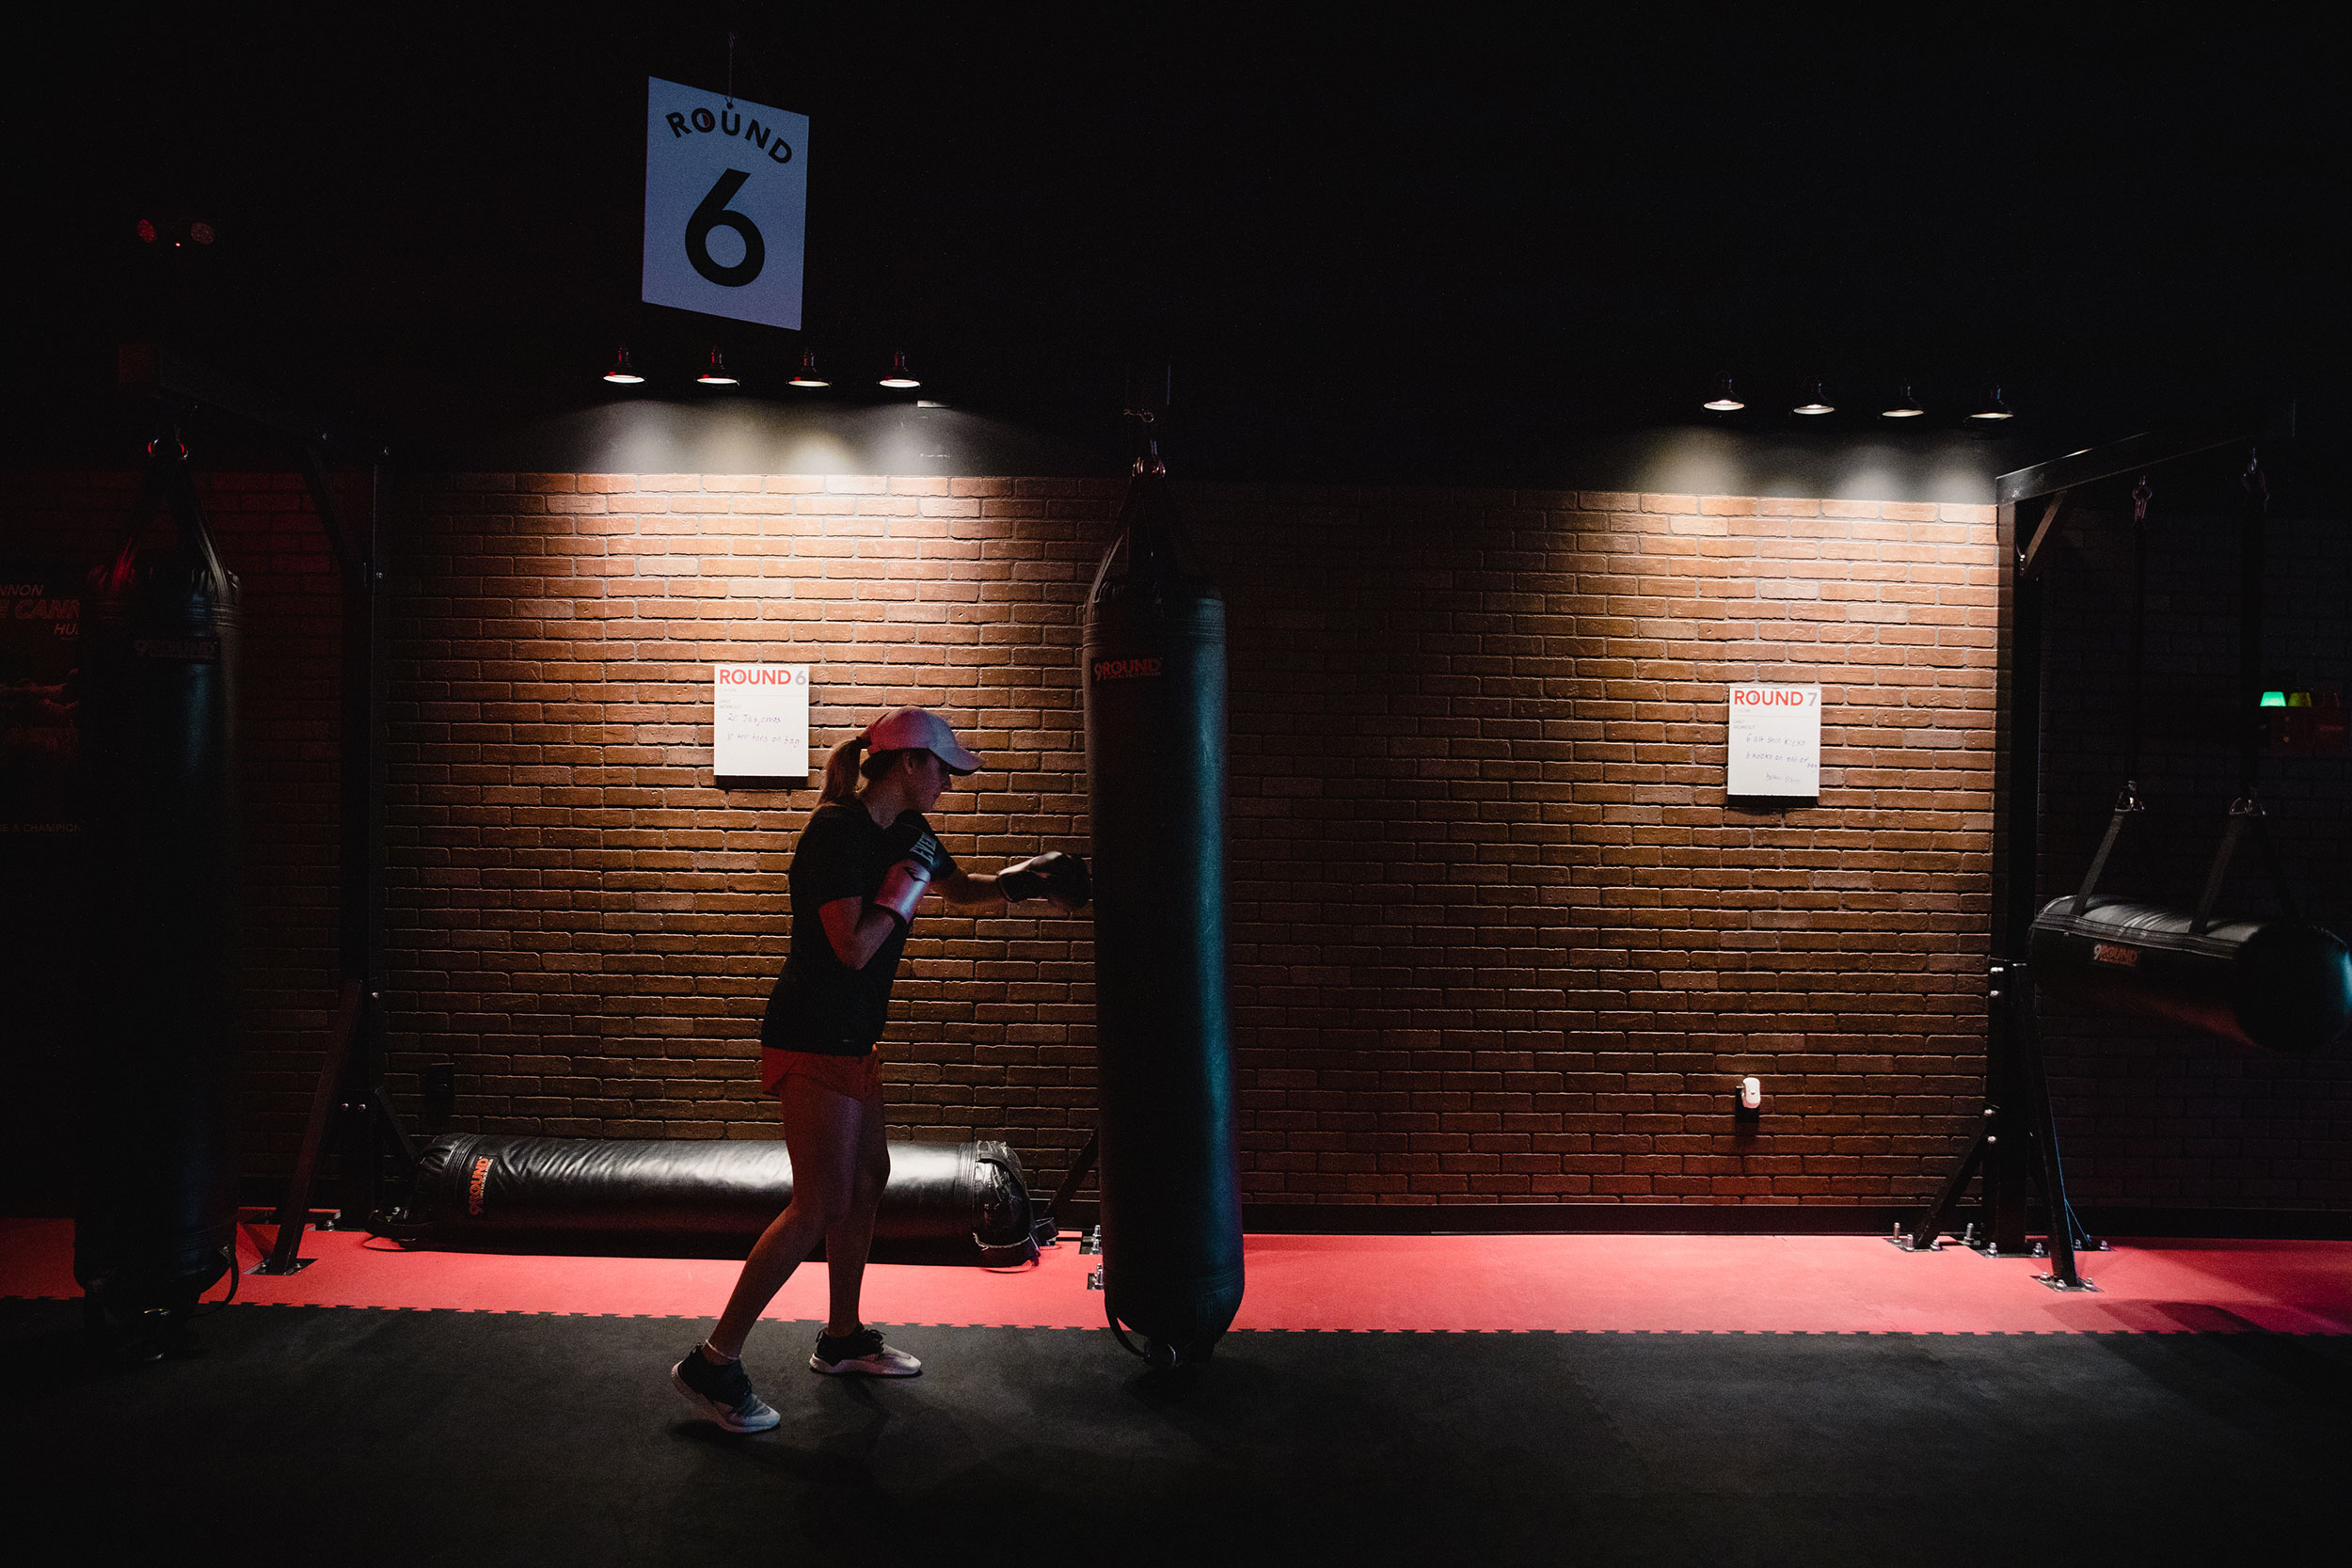 A person works out at a boxing gym in Woodstock, Georgia, on April 27.